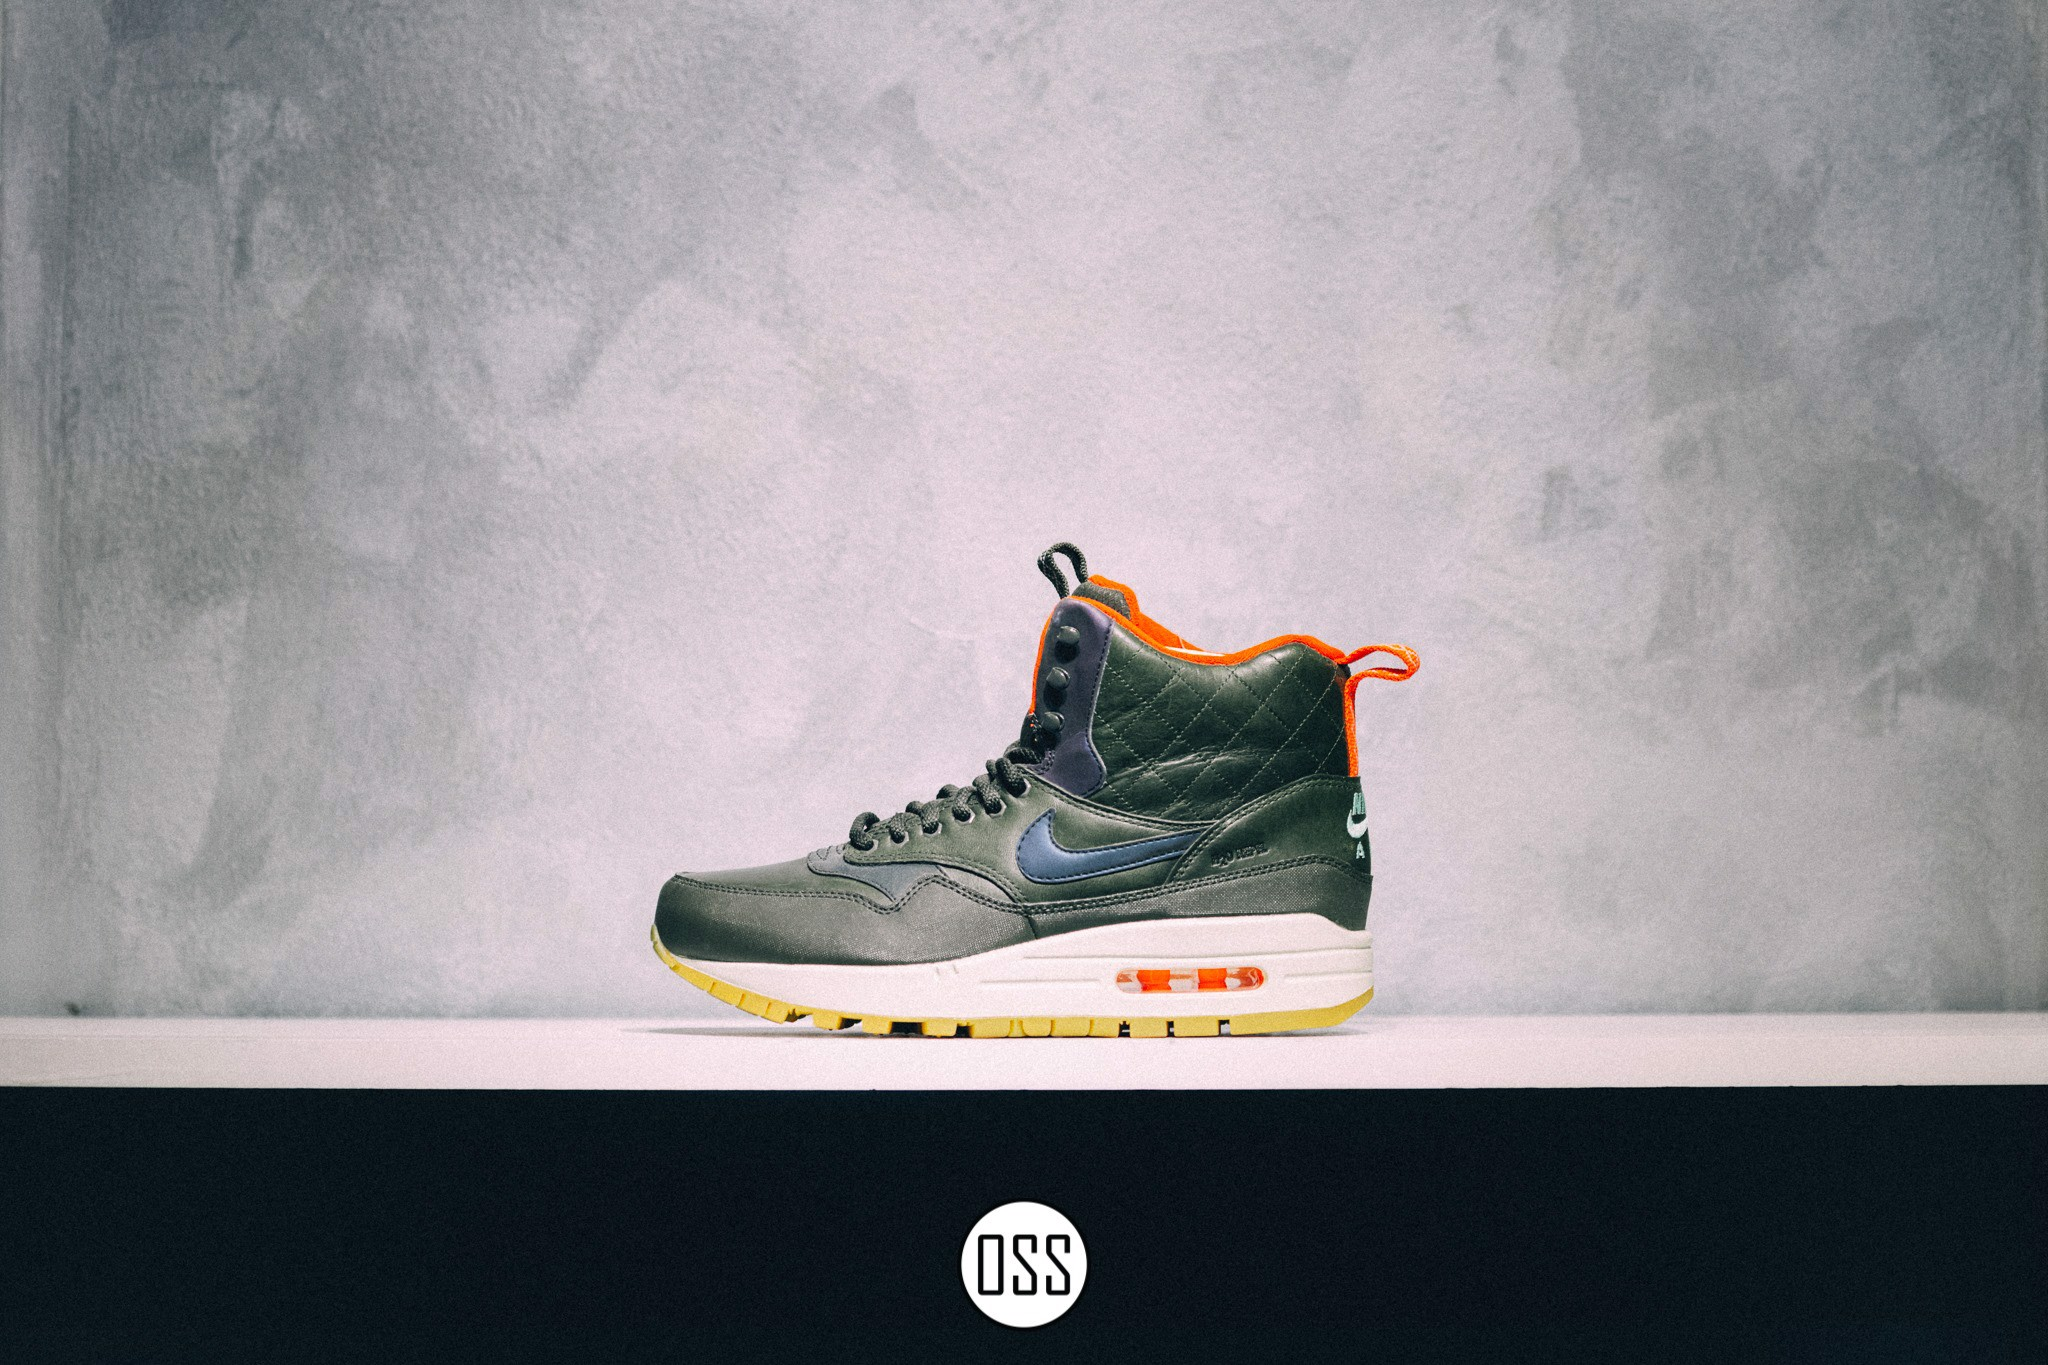 Nike Air Max 1 Mid Sneakerboot Reflect 'Green'